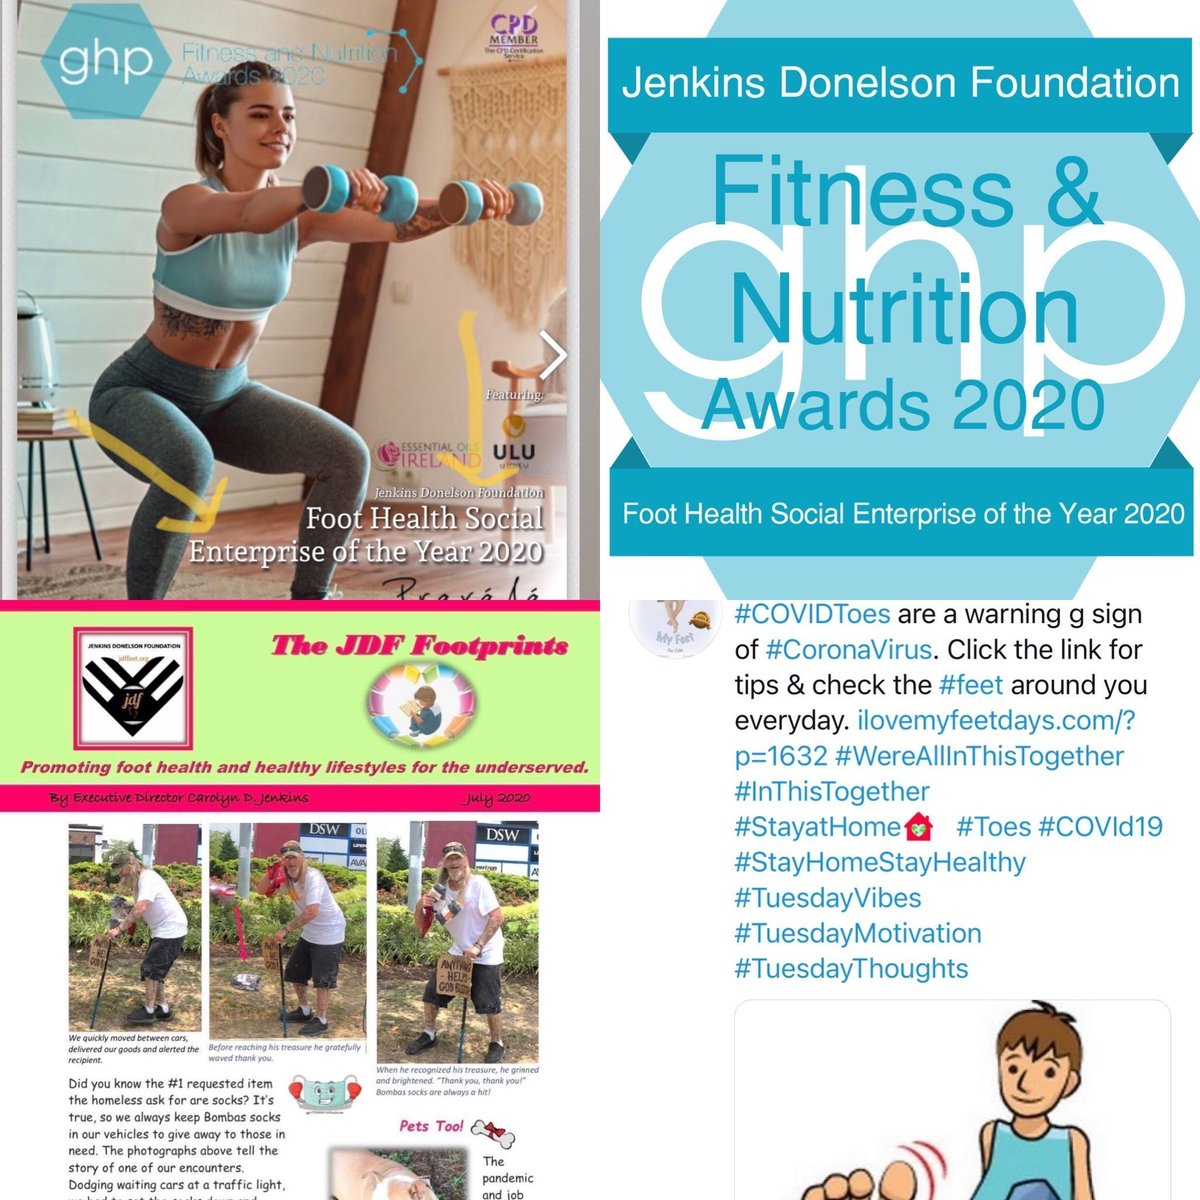 TheJDF is the 2020 Fitness & Nutrition Foot Health Social Enterprise of the Year for our commitment to keep people & feet healthy during COVID19. Our volunteers ROCK! Read more at  #MondayMorning #MondayMotivation #MondayThoughts #MondayVibes